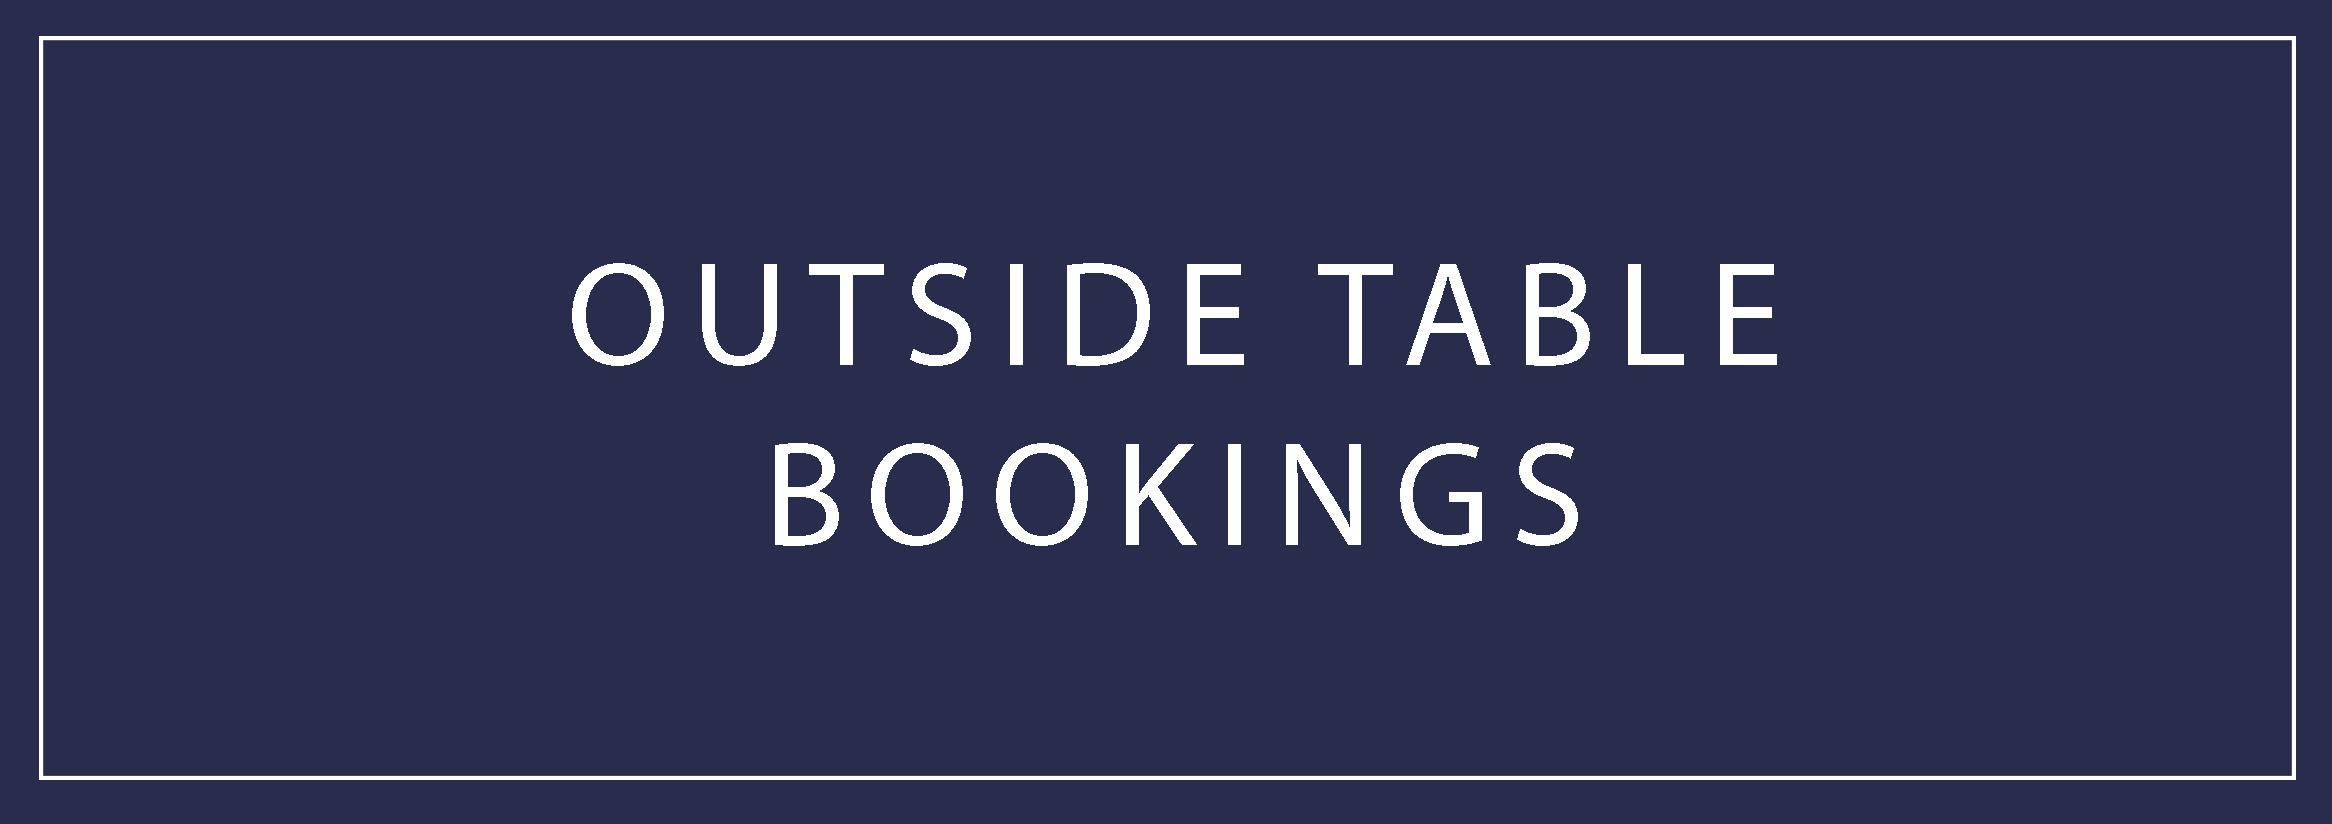 OUTSIDE TABLE BOOKINGS BUTTON